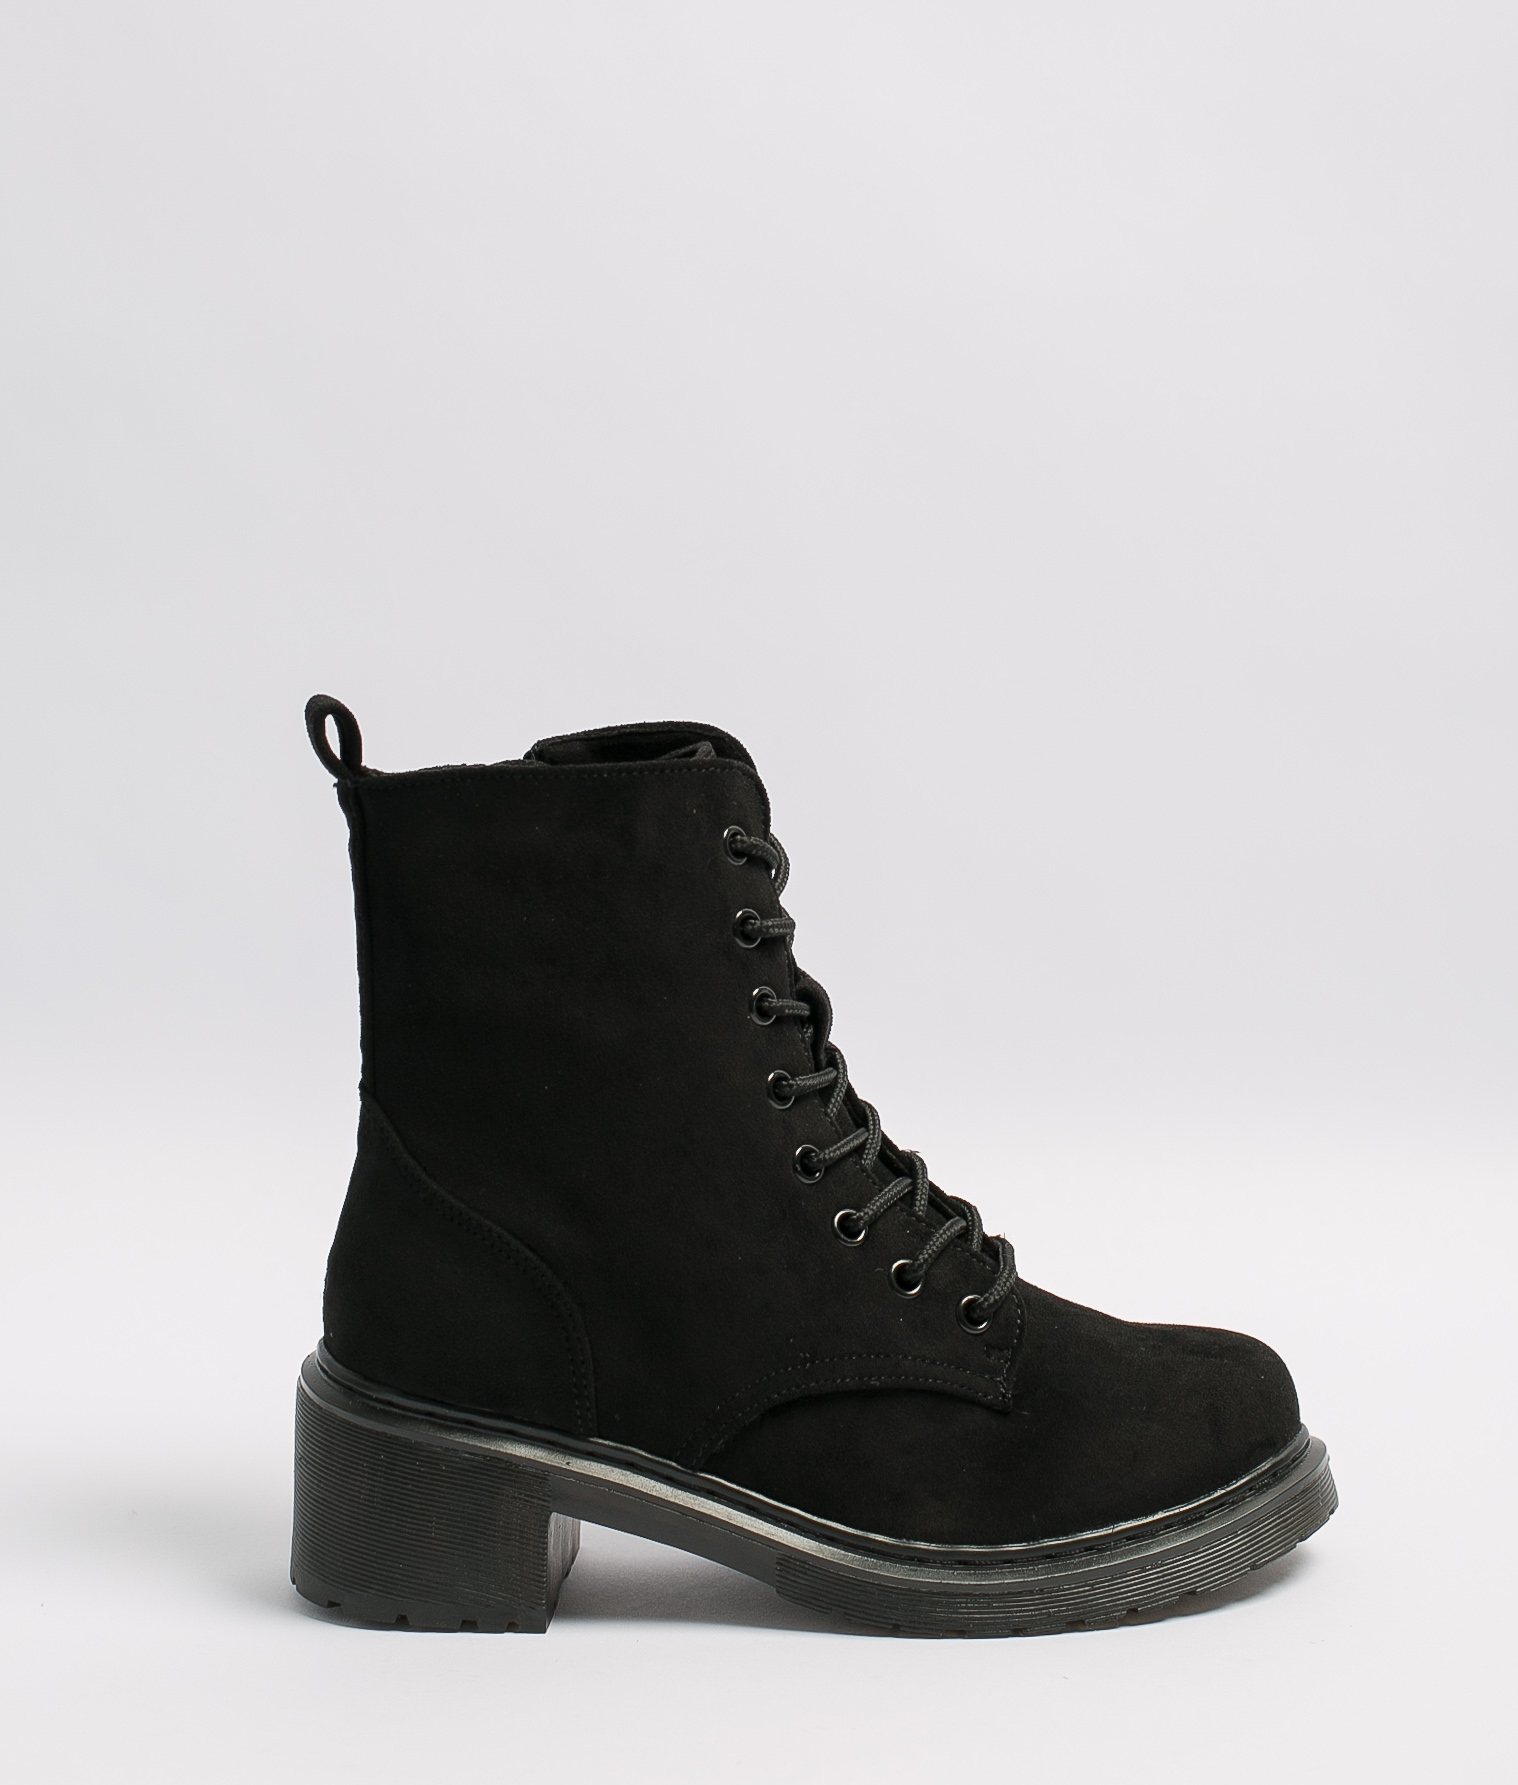 Low Boot Ferulcon - Black